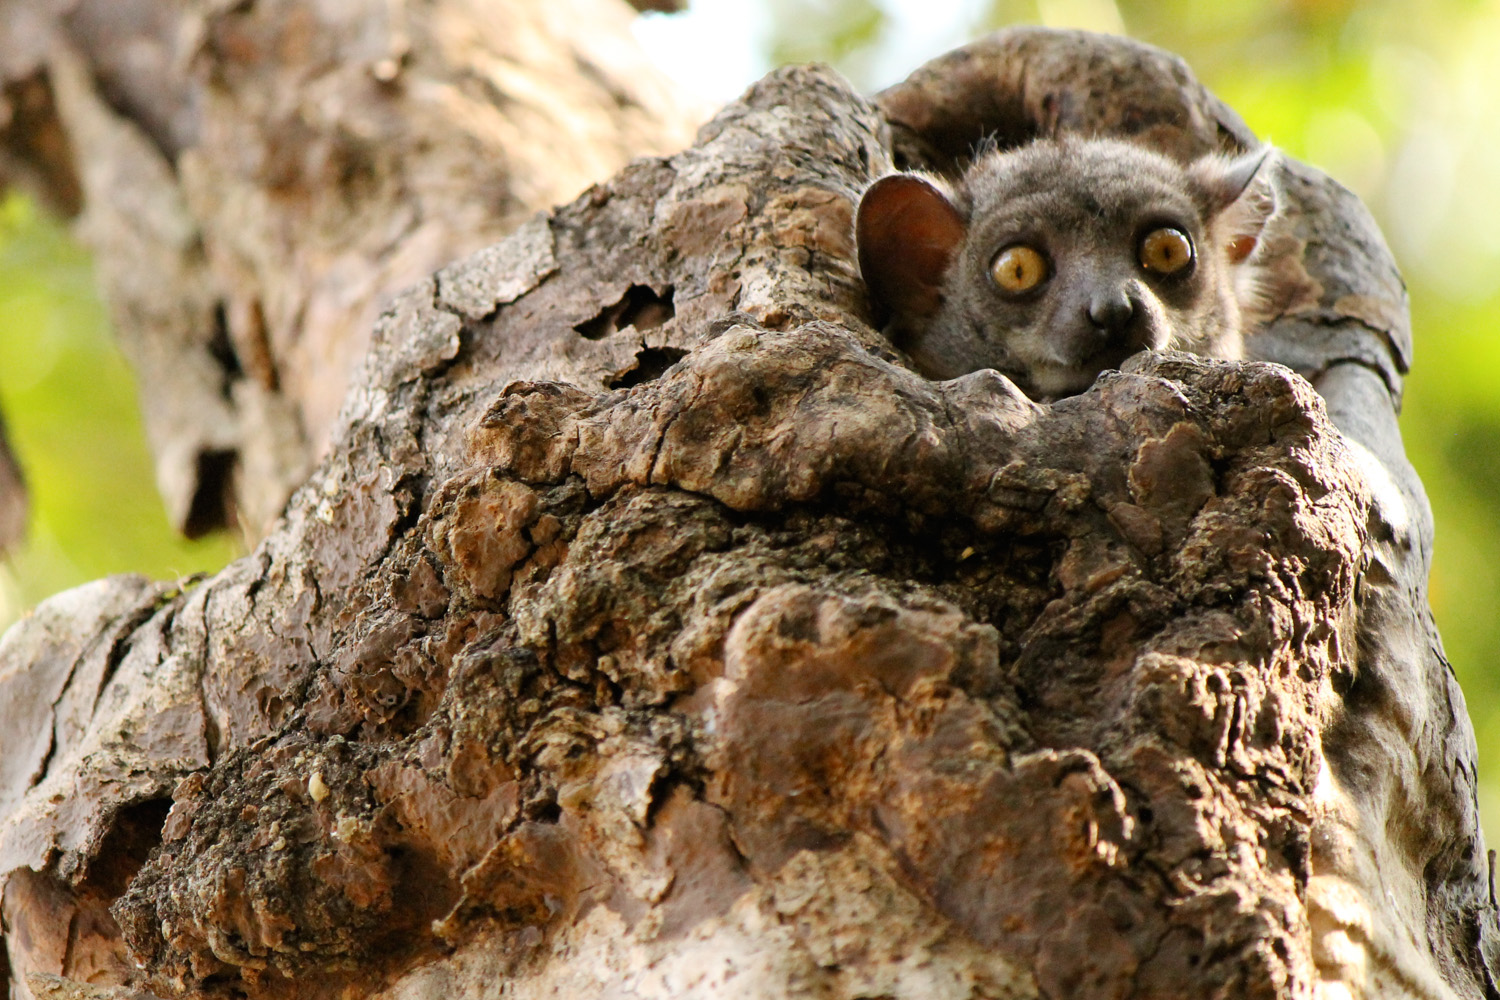 A nocturnal red-tailed sportive lemur waking up in Tsingy de Bemaraha National Park.